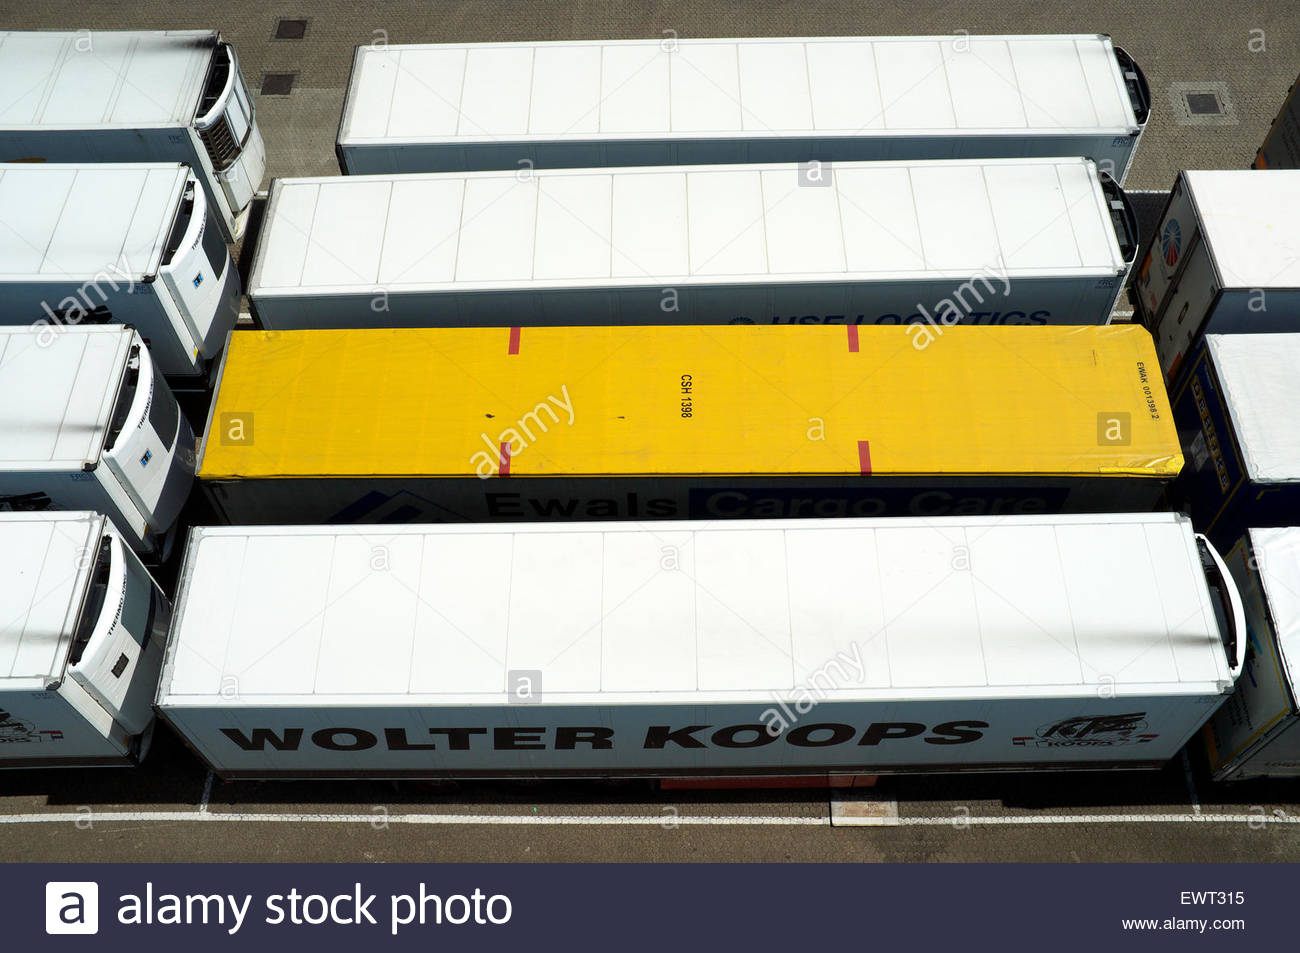 Lorry semi-trailers awaiting on the quayside for another international freight journey, at Hoek van Holland, Netherlands. - Stock Image